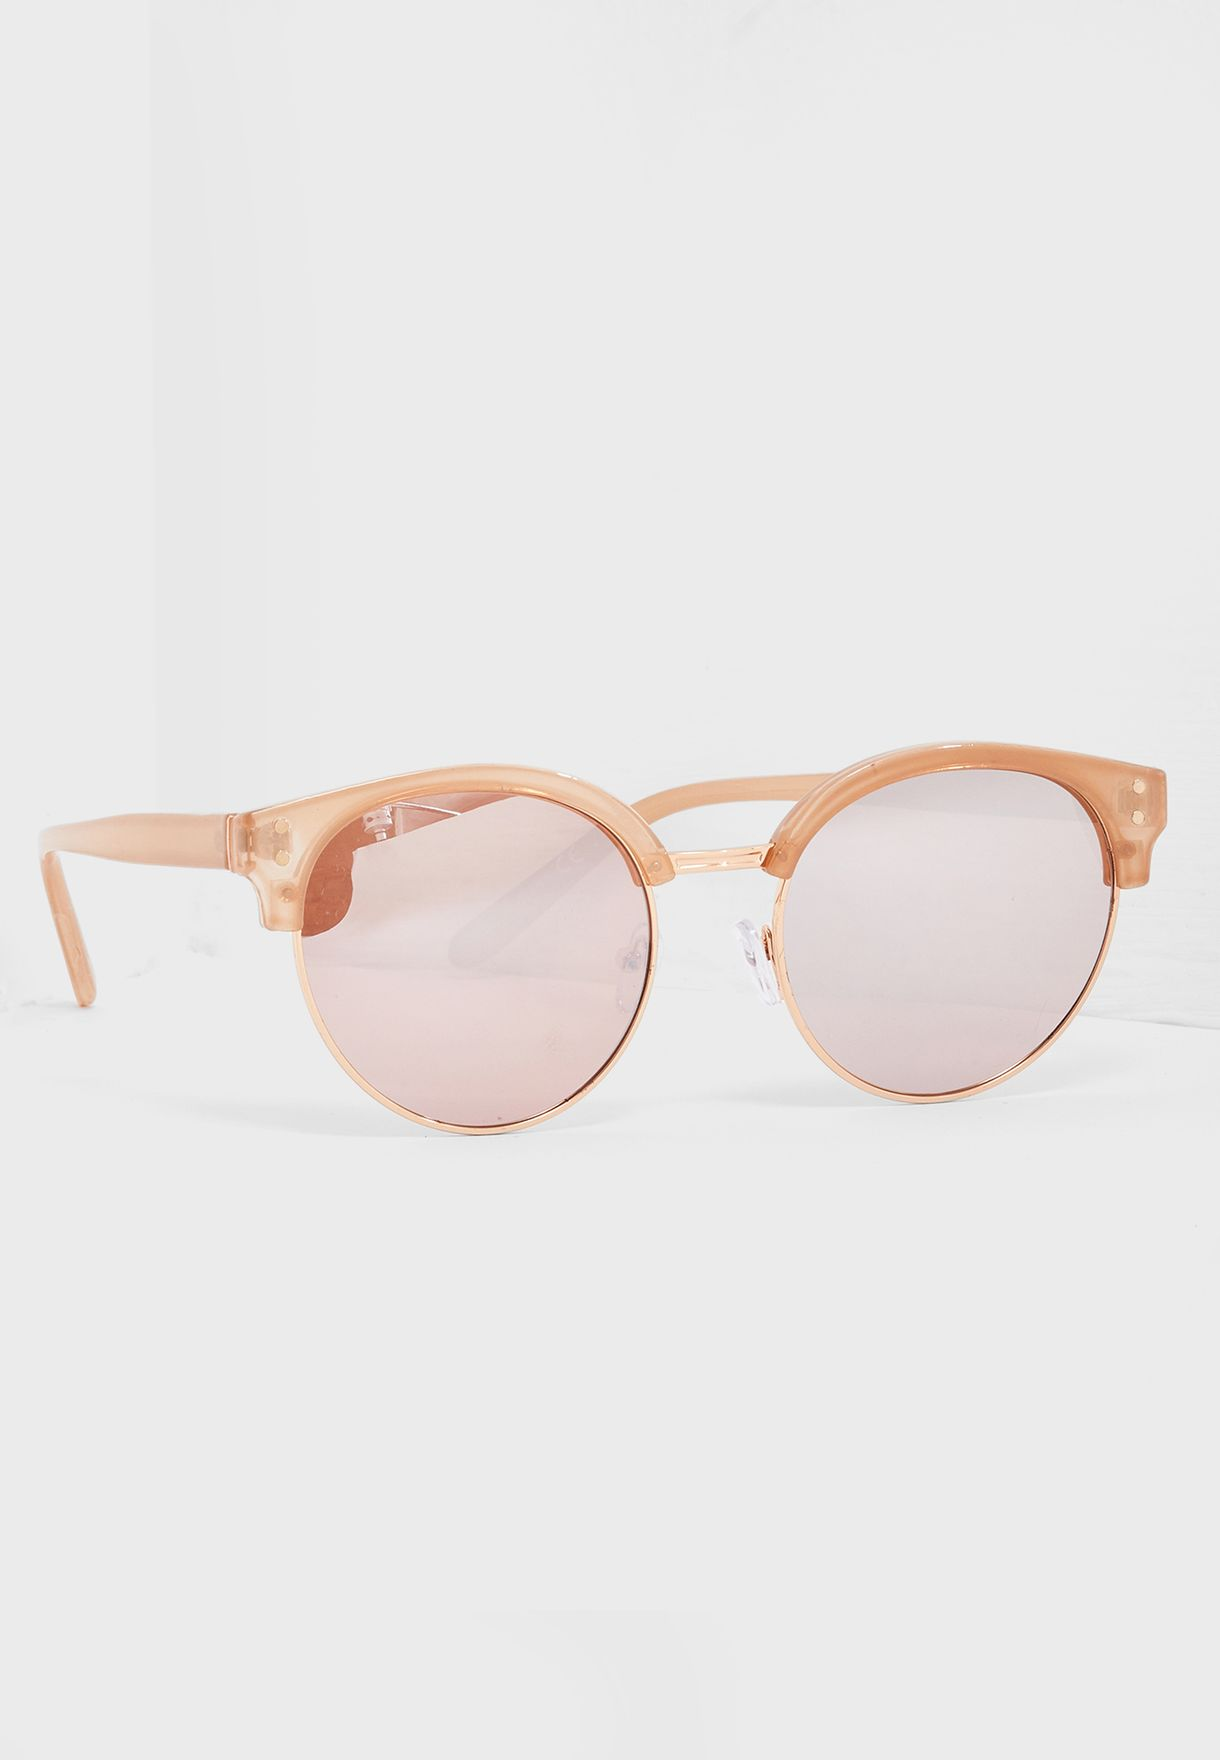 56749116bf Shop Call It Spring beige Drubel Round Frame Sunglass DRUBEL101 for ...